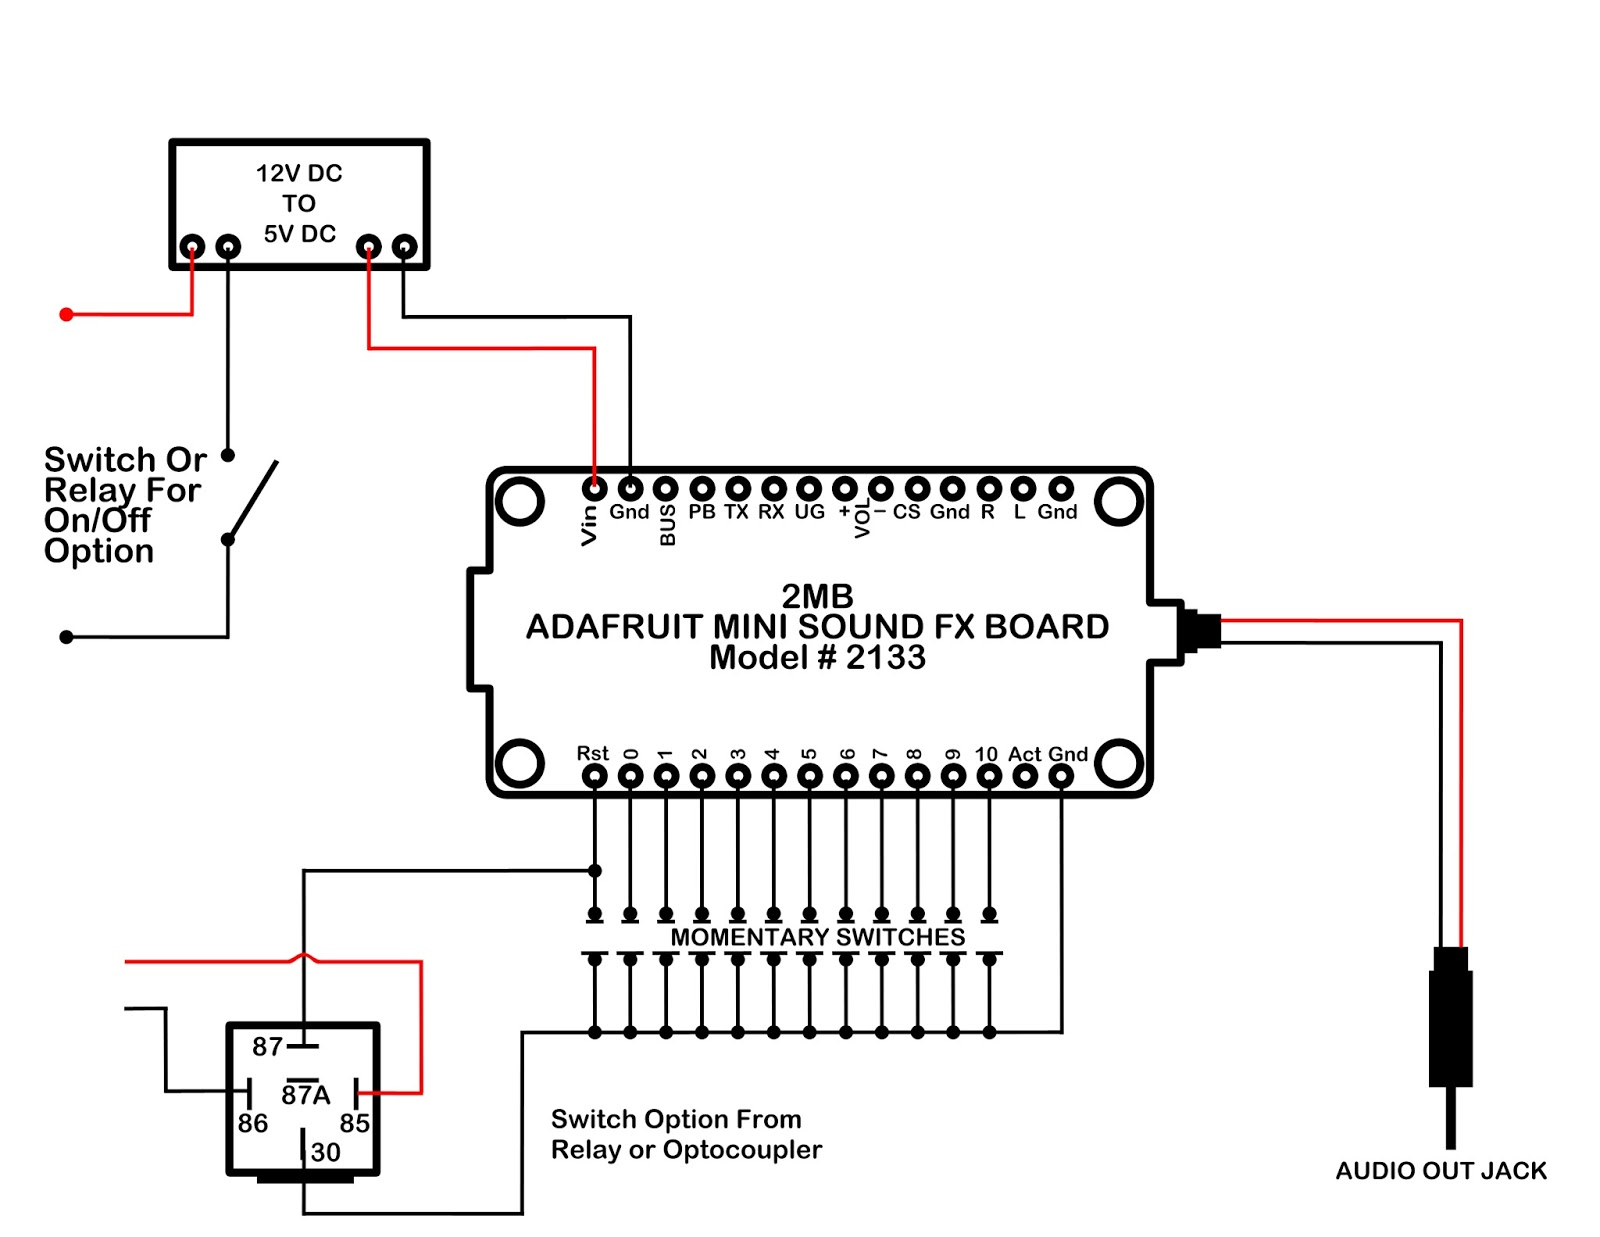 hight resolution of here is a little additional work done on the diagram to include a power on off switch and to use the option of either a relay or optocoupler as switch